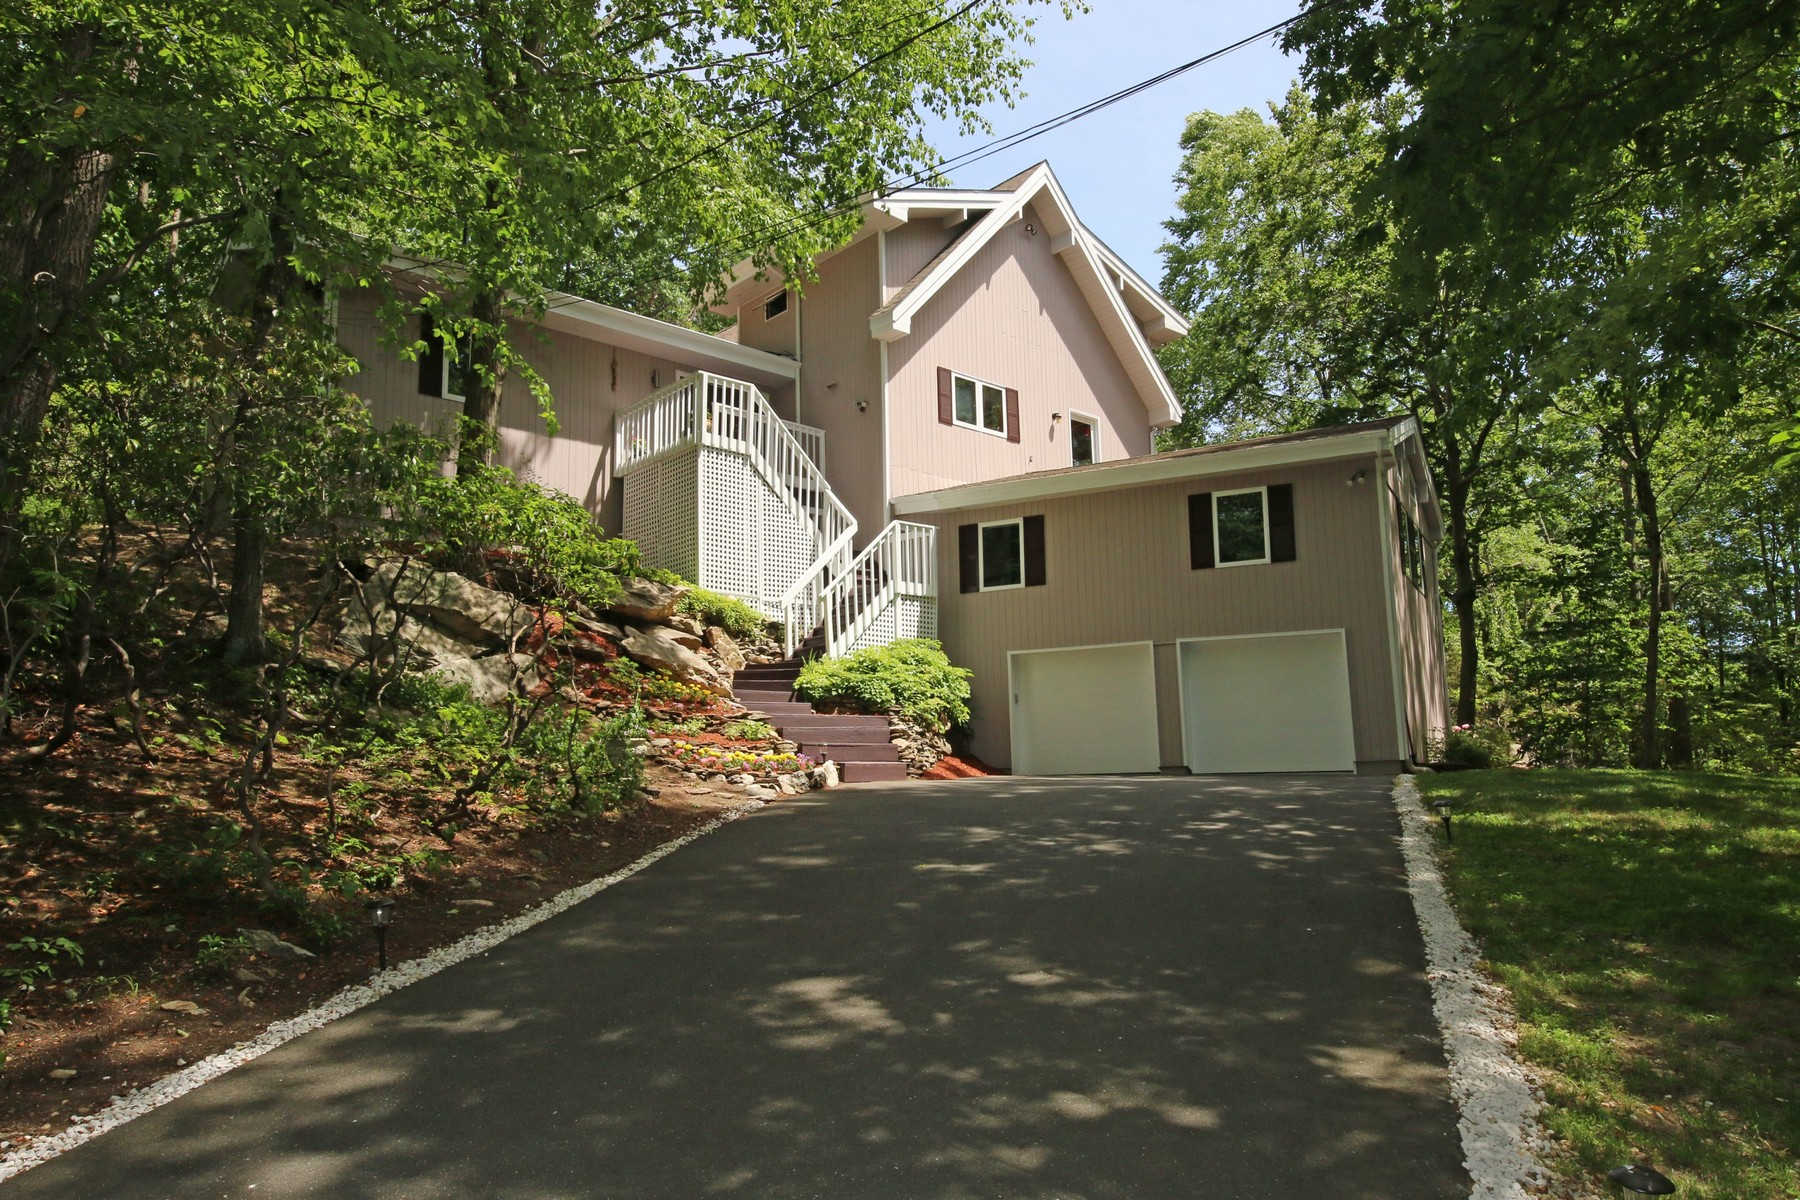 Single Family Home for Sale at Close to Town Modern 38 Casey Lane Ridgefield, Connecticut, 06877 United States